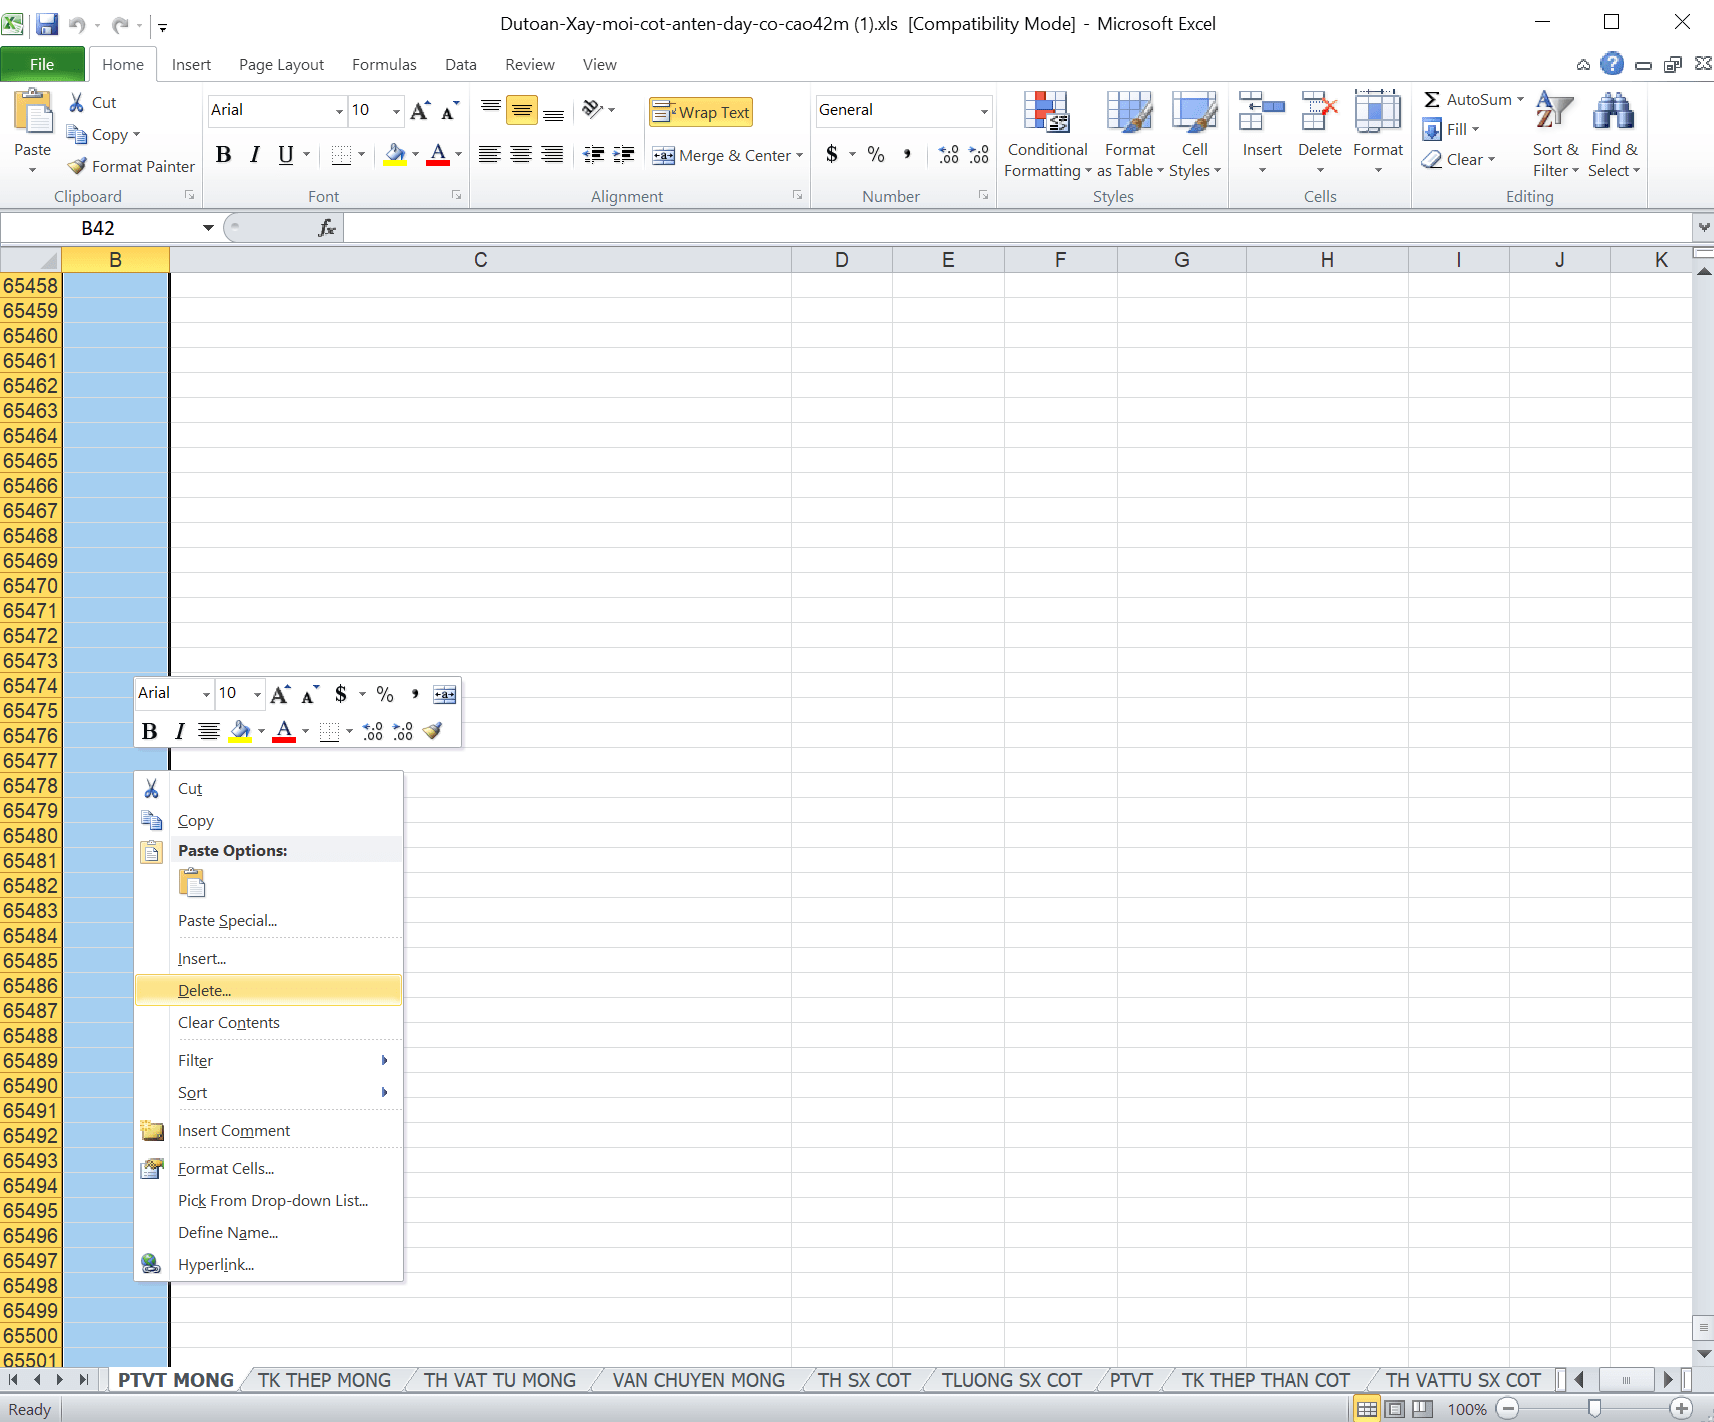 cach-lam-giam-dung-luong-file-excel